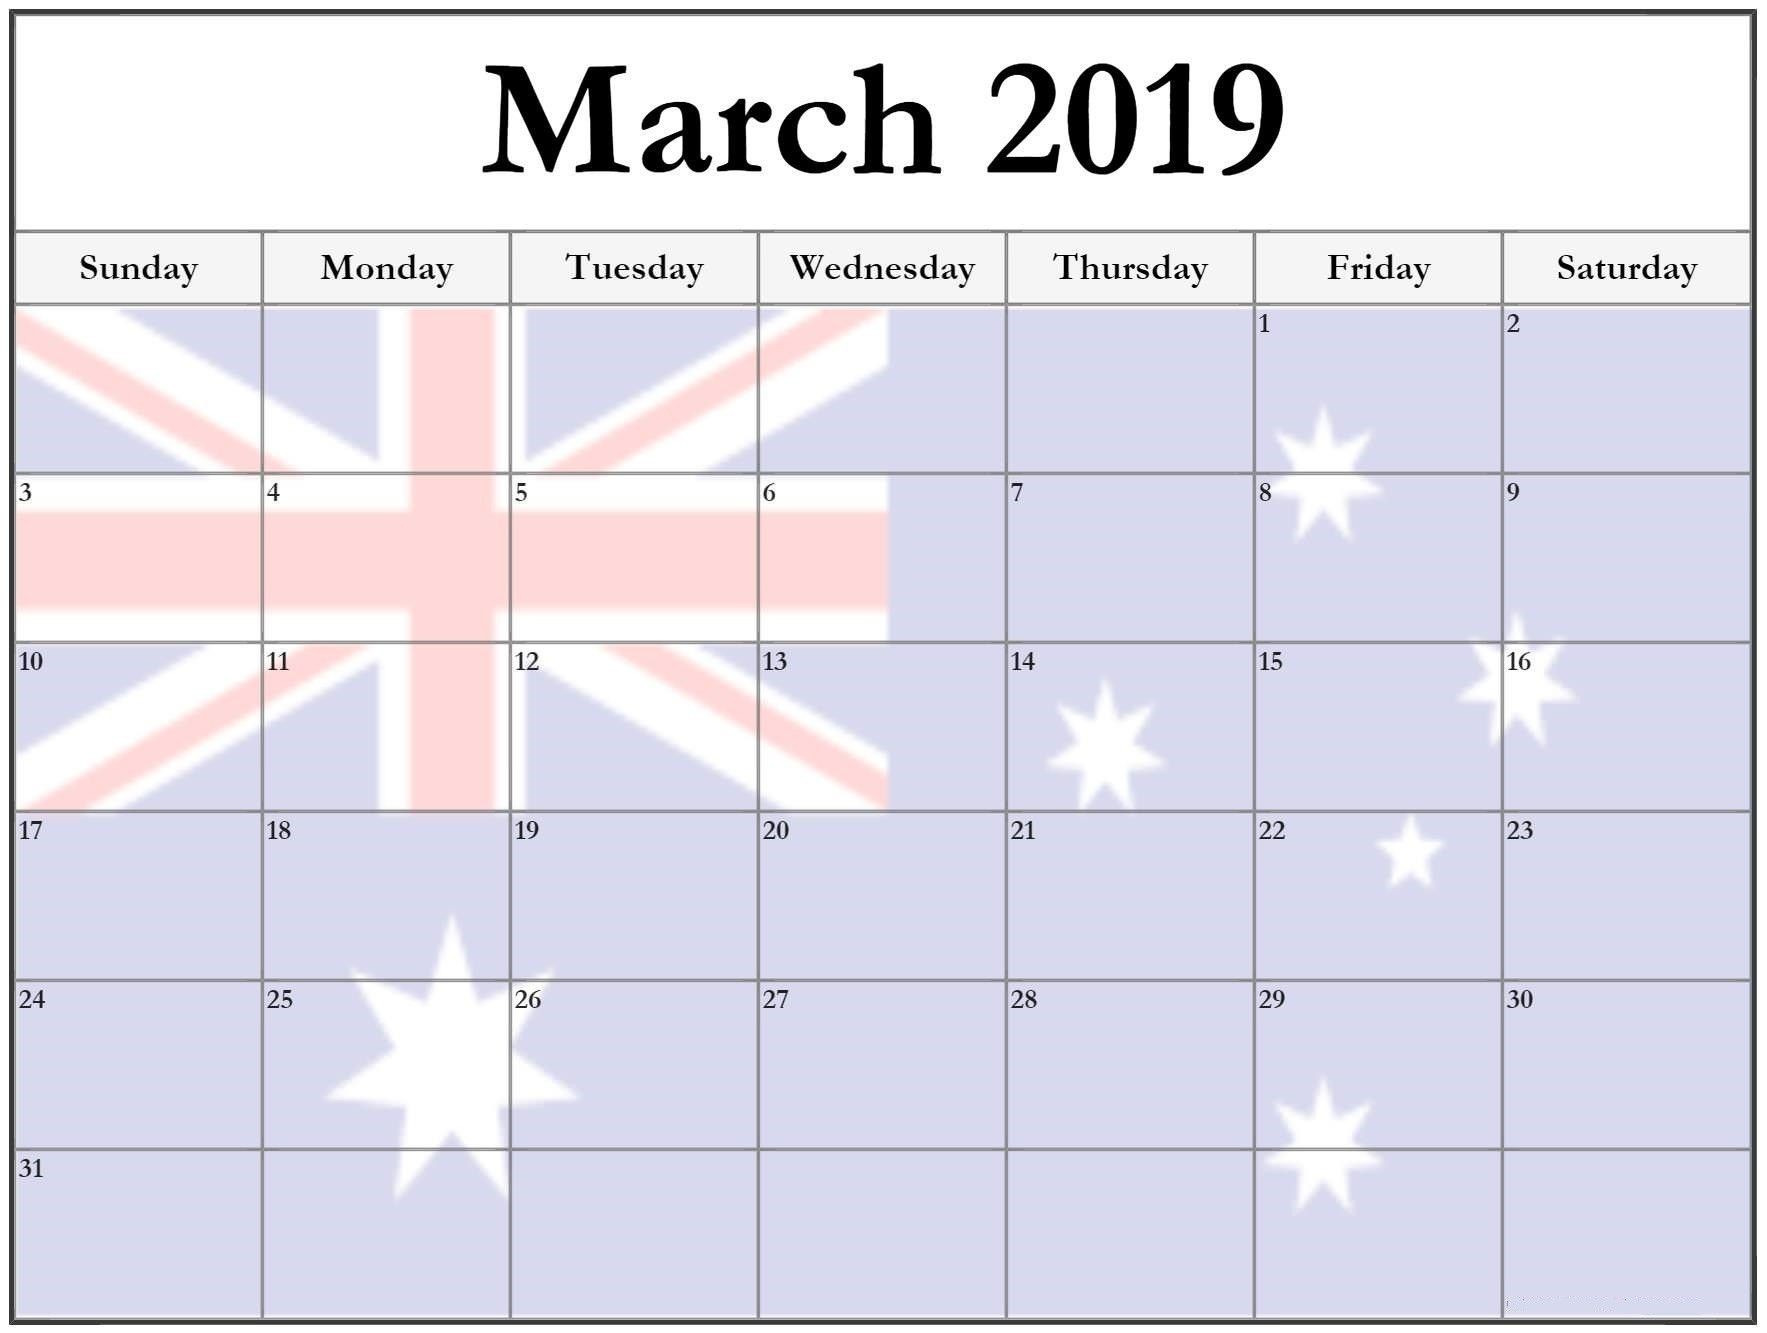 March Holiday Calendar 2019 Más Caliente March 2019 Calendar with Holidays Australia Marchcalendar Of March Holiday Calendar 2019 Mejores Y Más Novedosos March 2019 Calendar Printable with Holidays